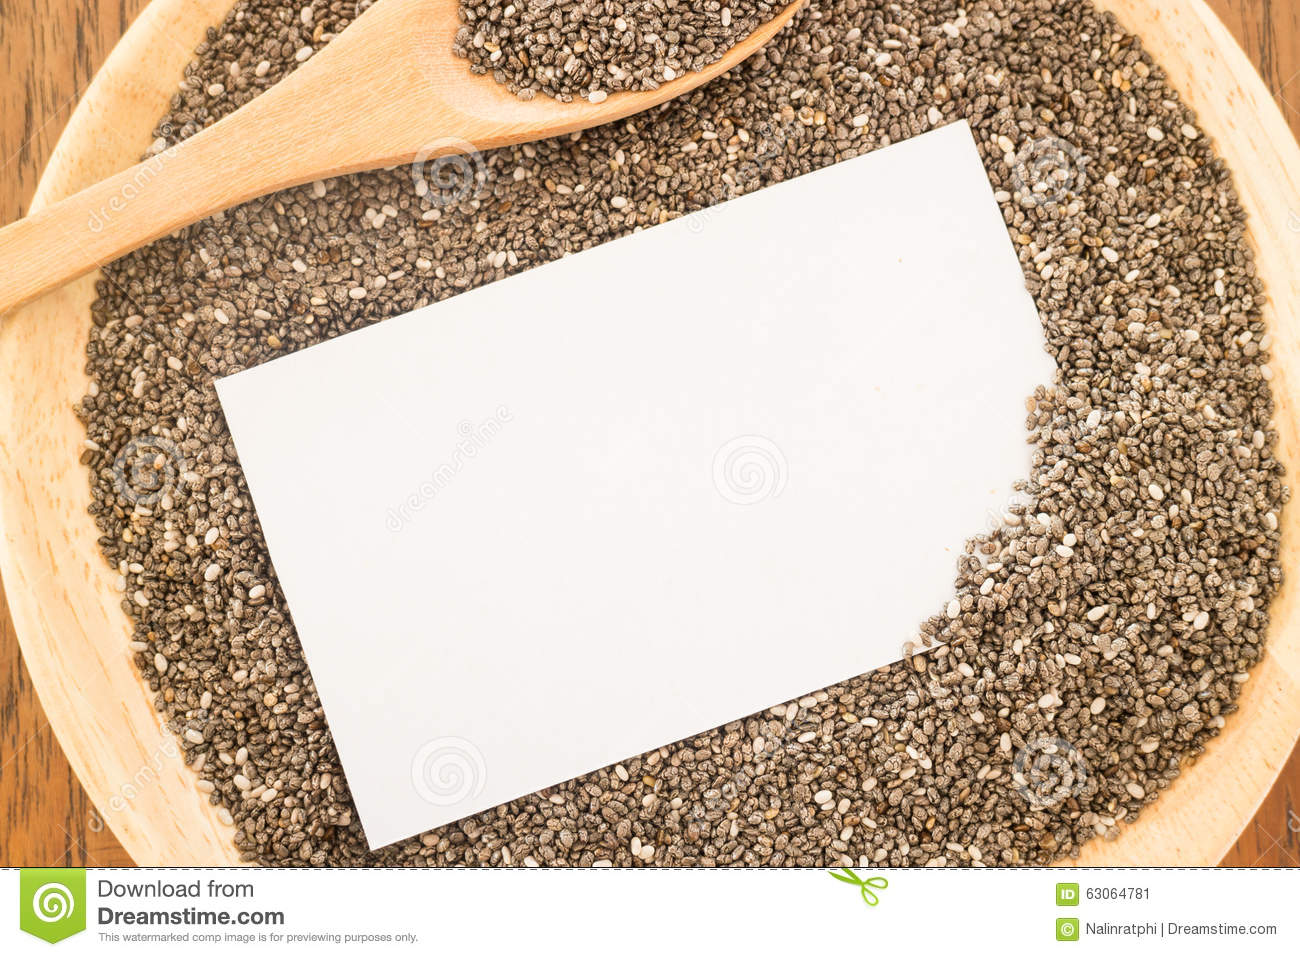 Nutritious Chia Seeds And Business Card Stock Image Image Of Chia